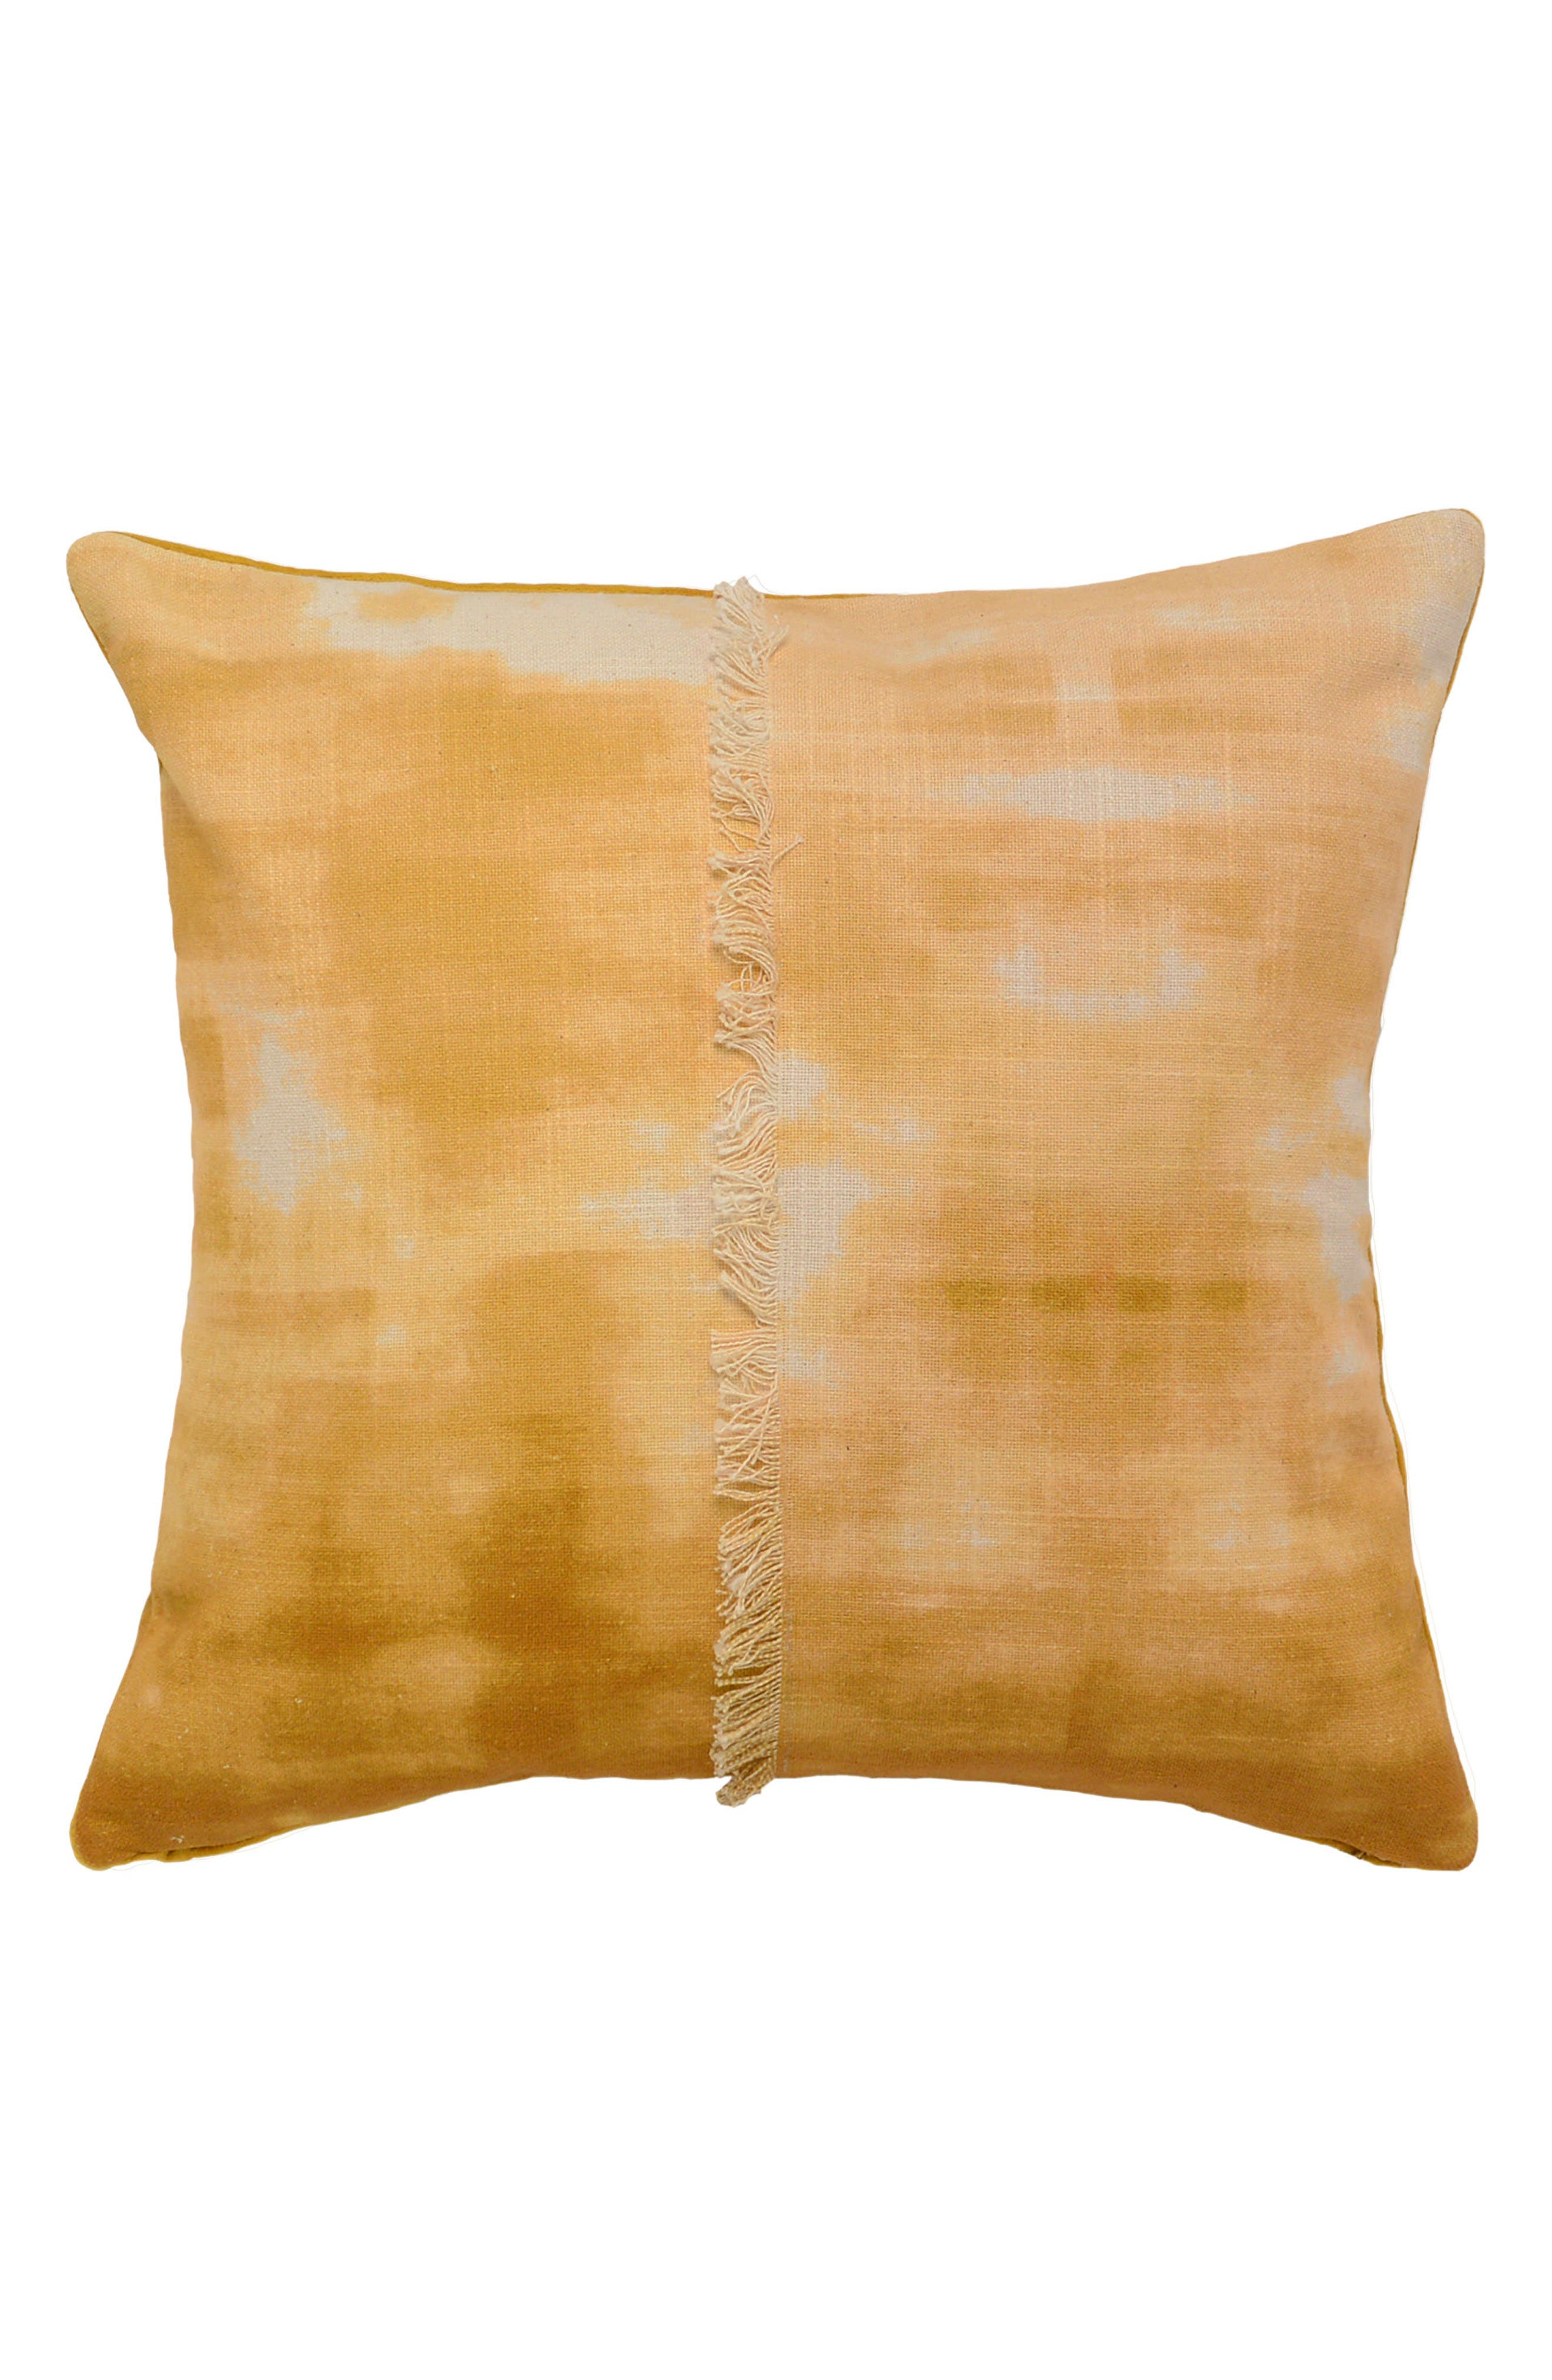 Kino Accent Pillow,                             Main thumbnail 1, color,                             700